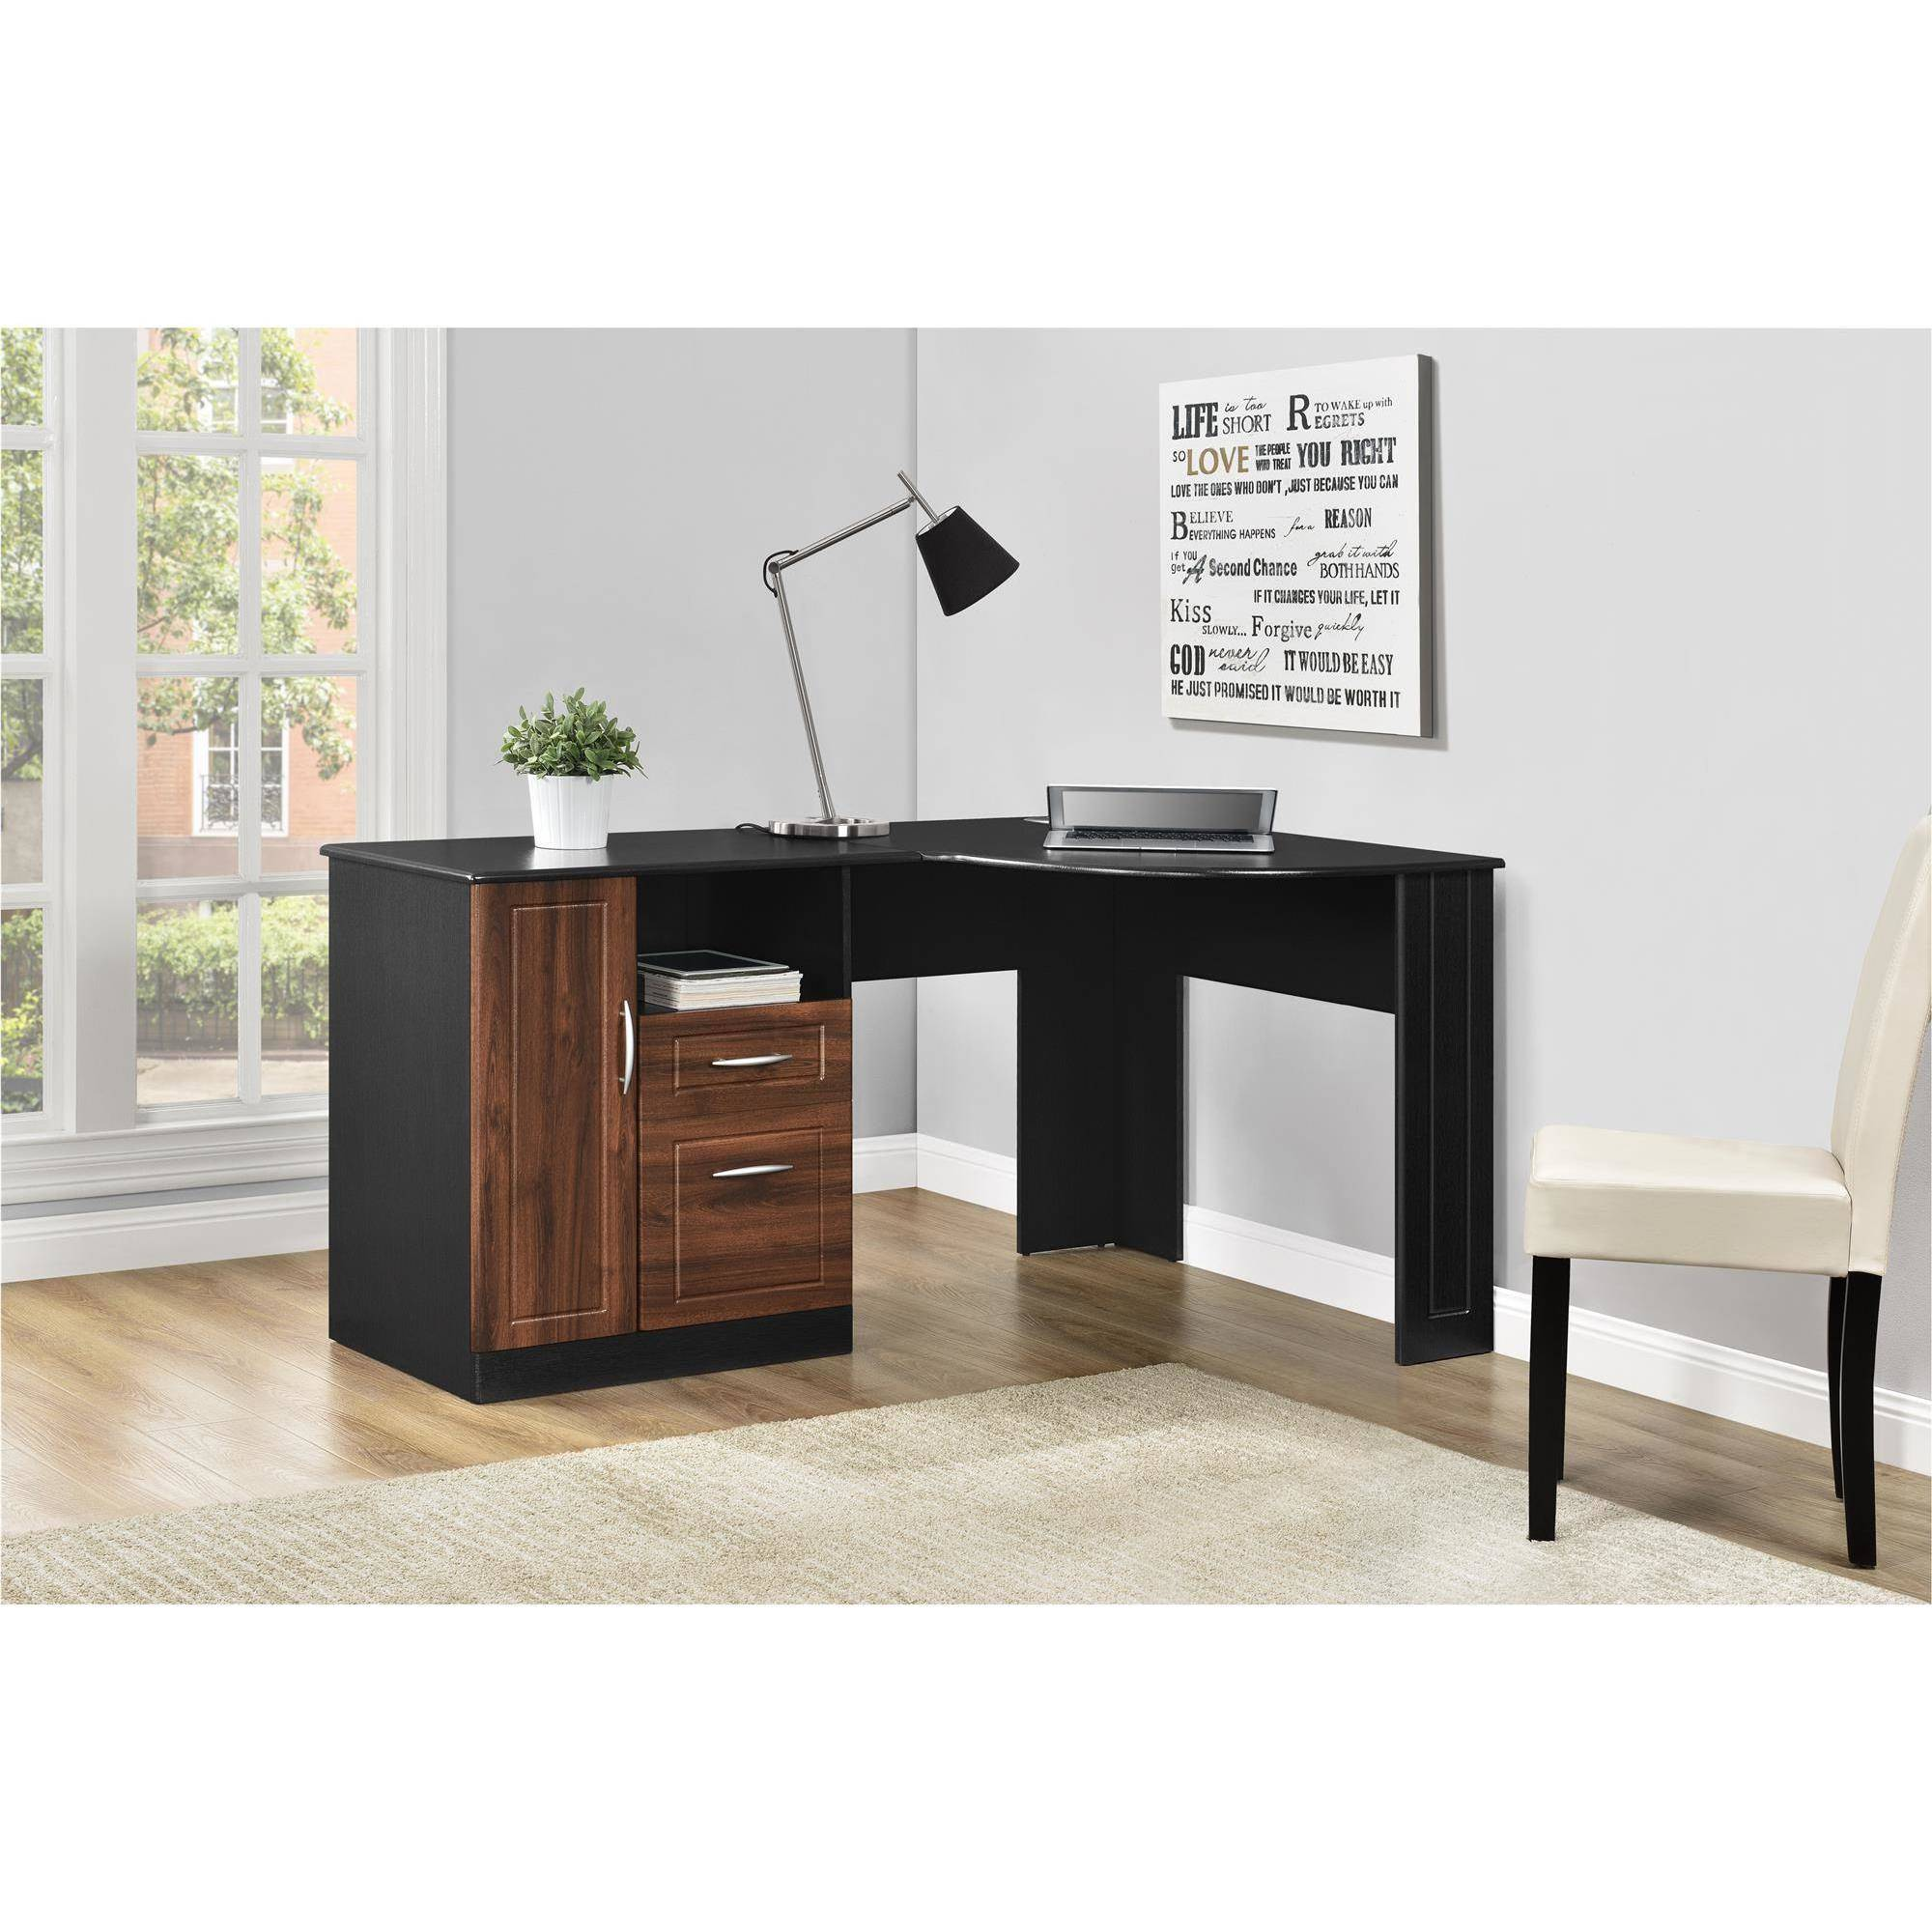 Altra Avalon Corner Desk, Cherry/Black